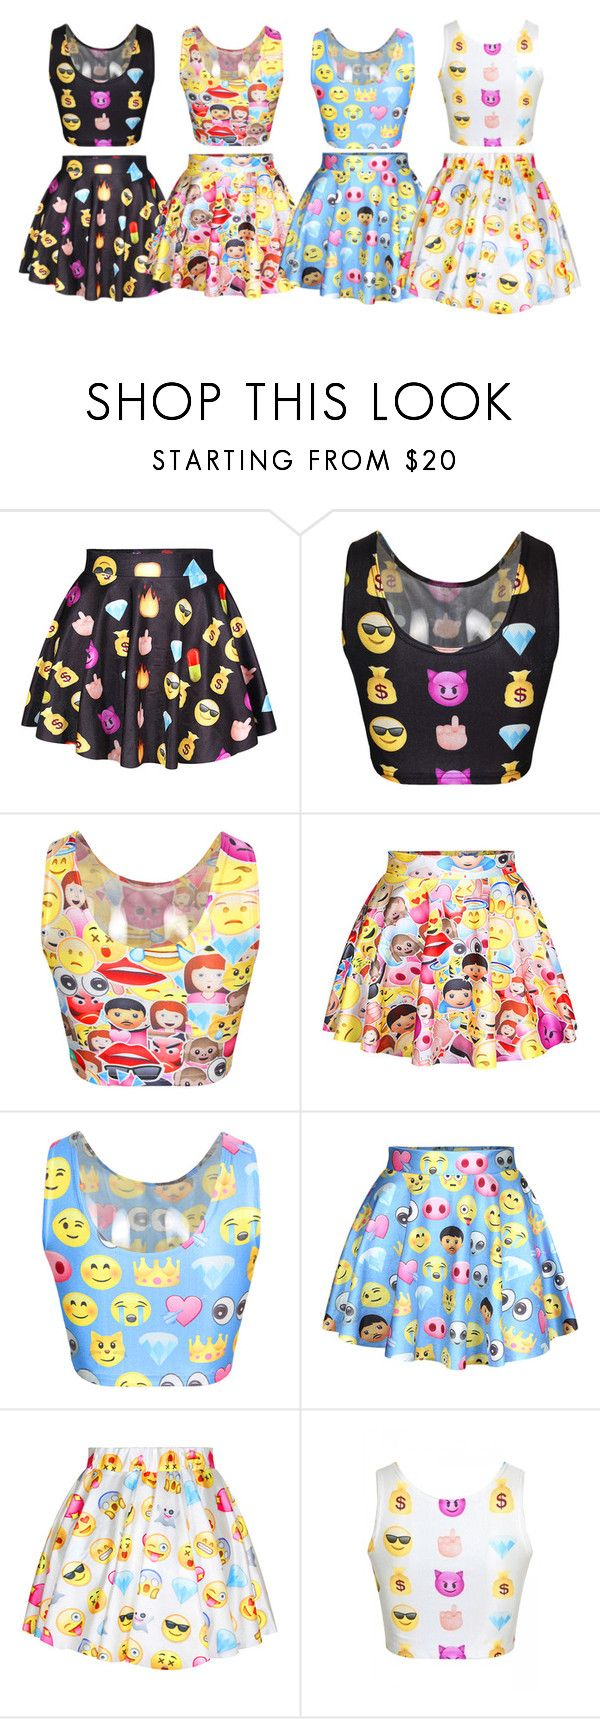 Emoji Dress | Emoji Emojis and Polyvore